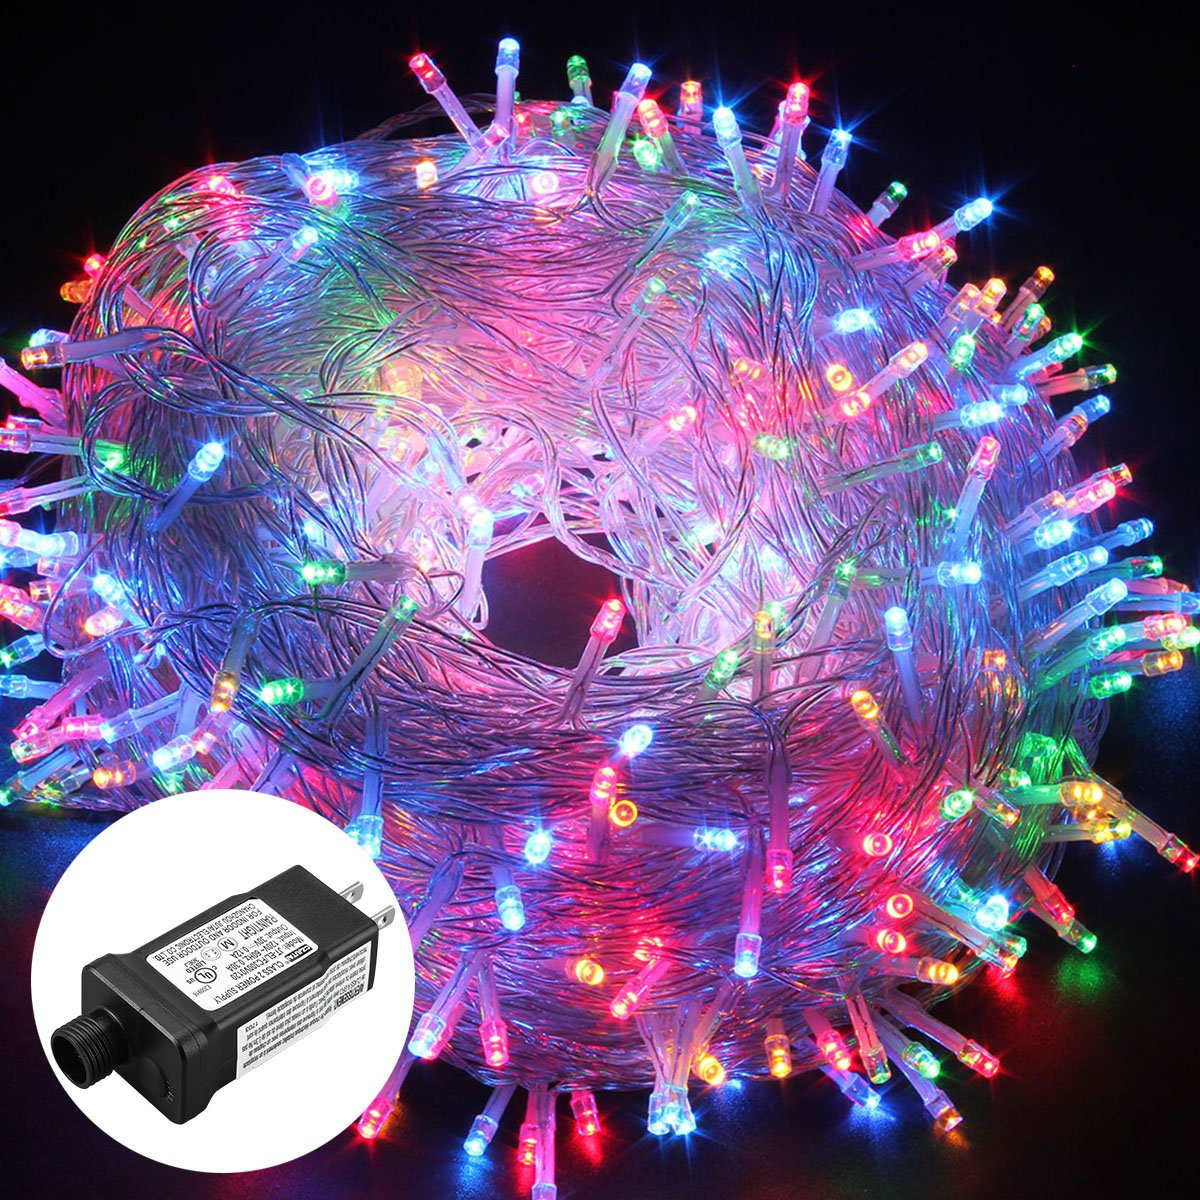 Excelvan Safe Low Voltage 8 Modes 500 LEDs 100M/328FT Dimmable Fairy String Lights with Transparent String for Bedroom Patio Garden Gate Yard Party Wedding Christmas Decoration, Multi Color